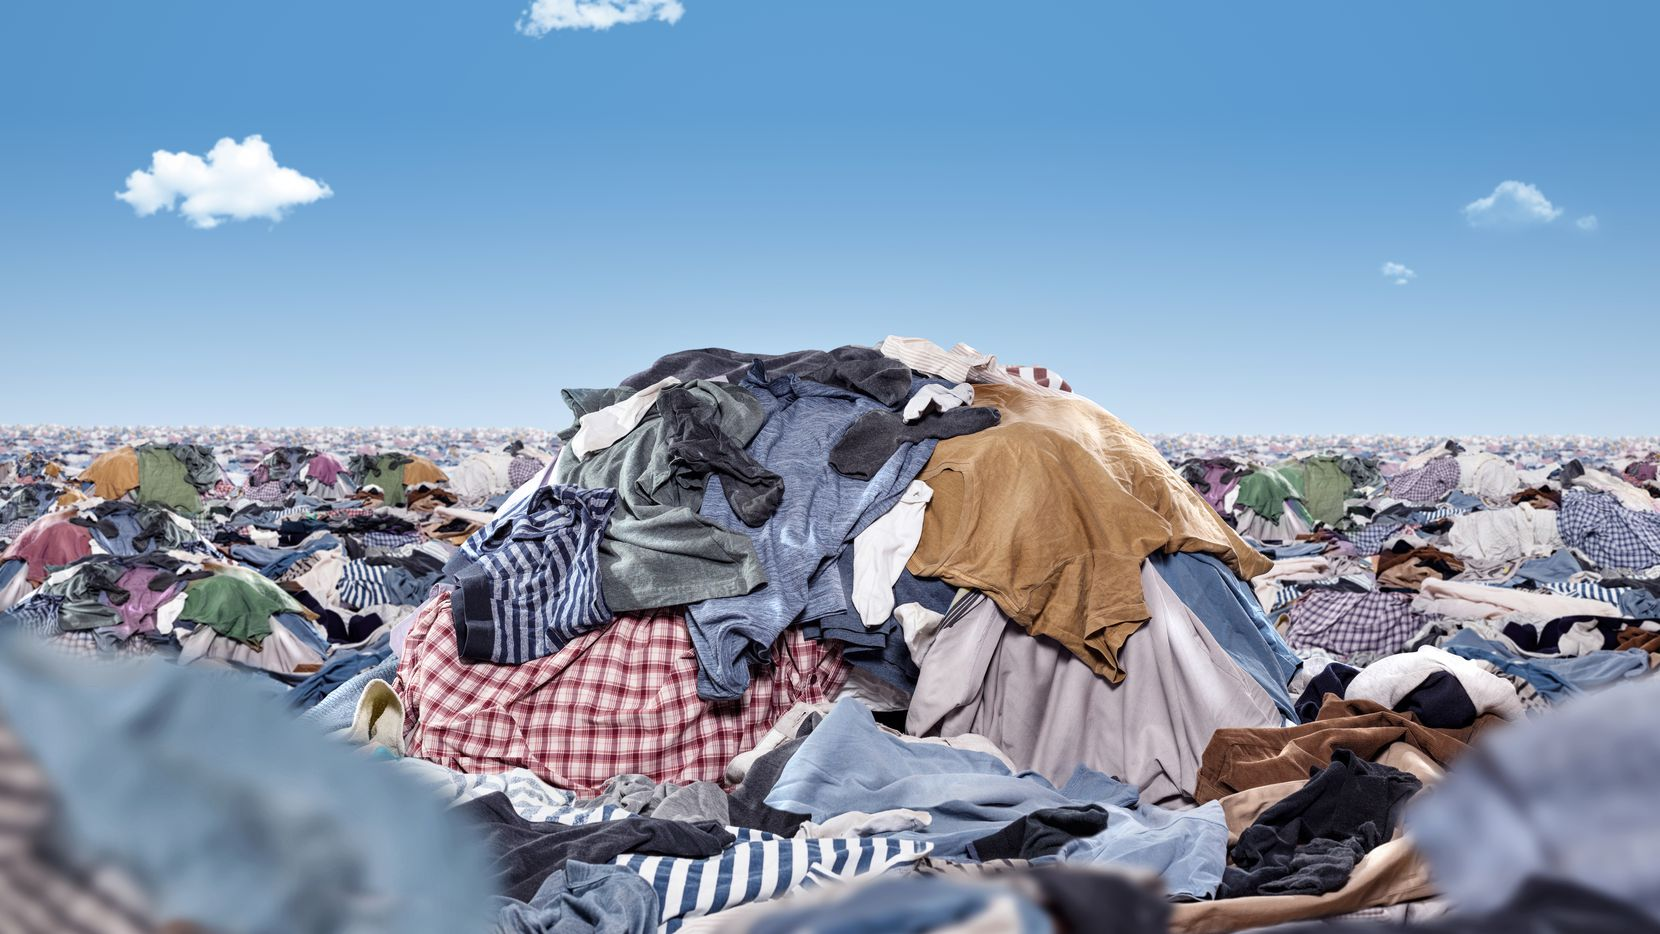 Every two days, the world discards or burns enough clothing to fill AT&T Stadium.